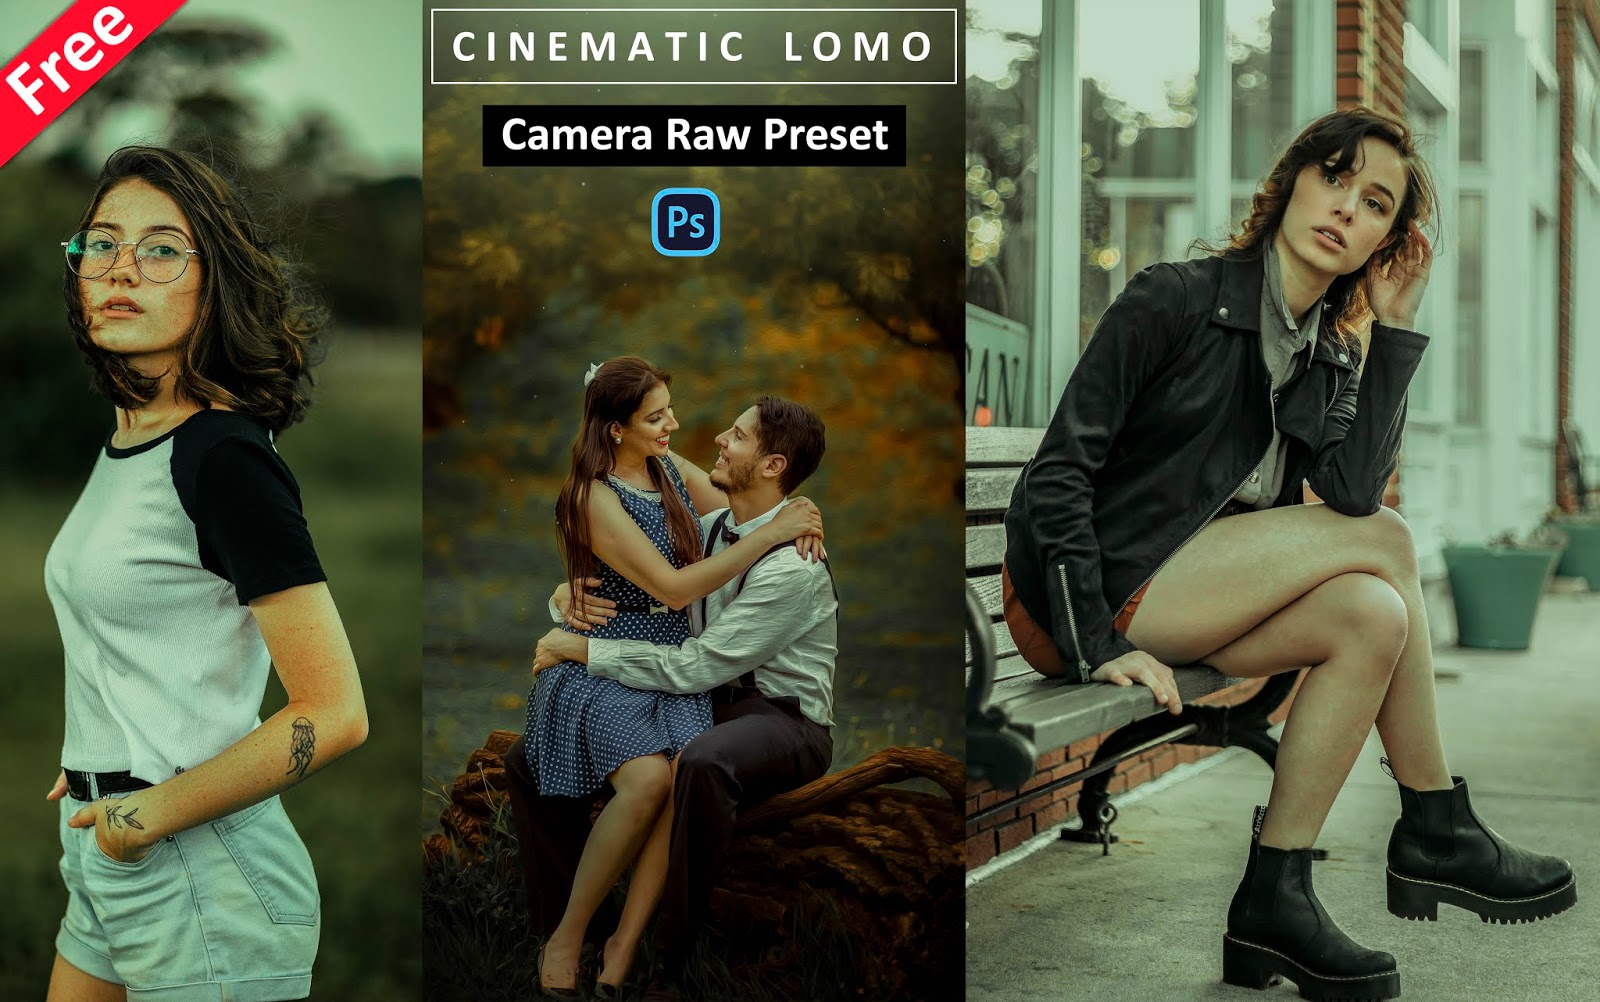 Download Cinematic LOMO Camera Raw Preset for Free | How to Create LOMO Effect in Photoshop